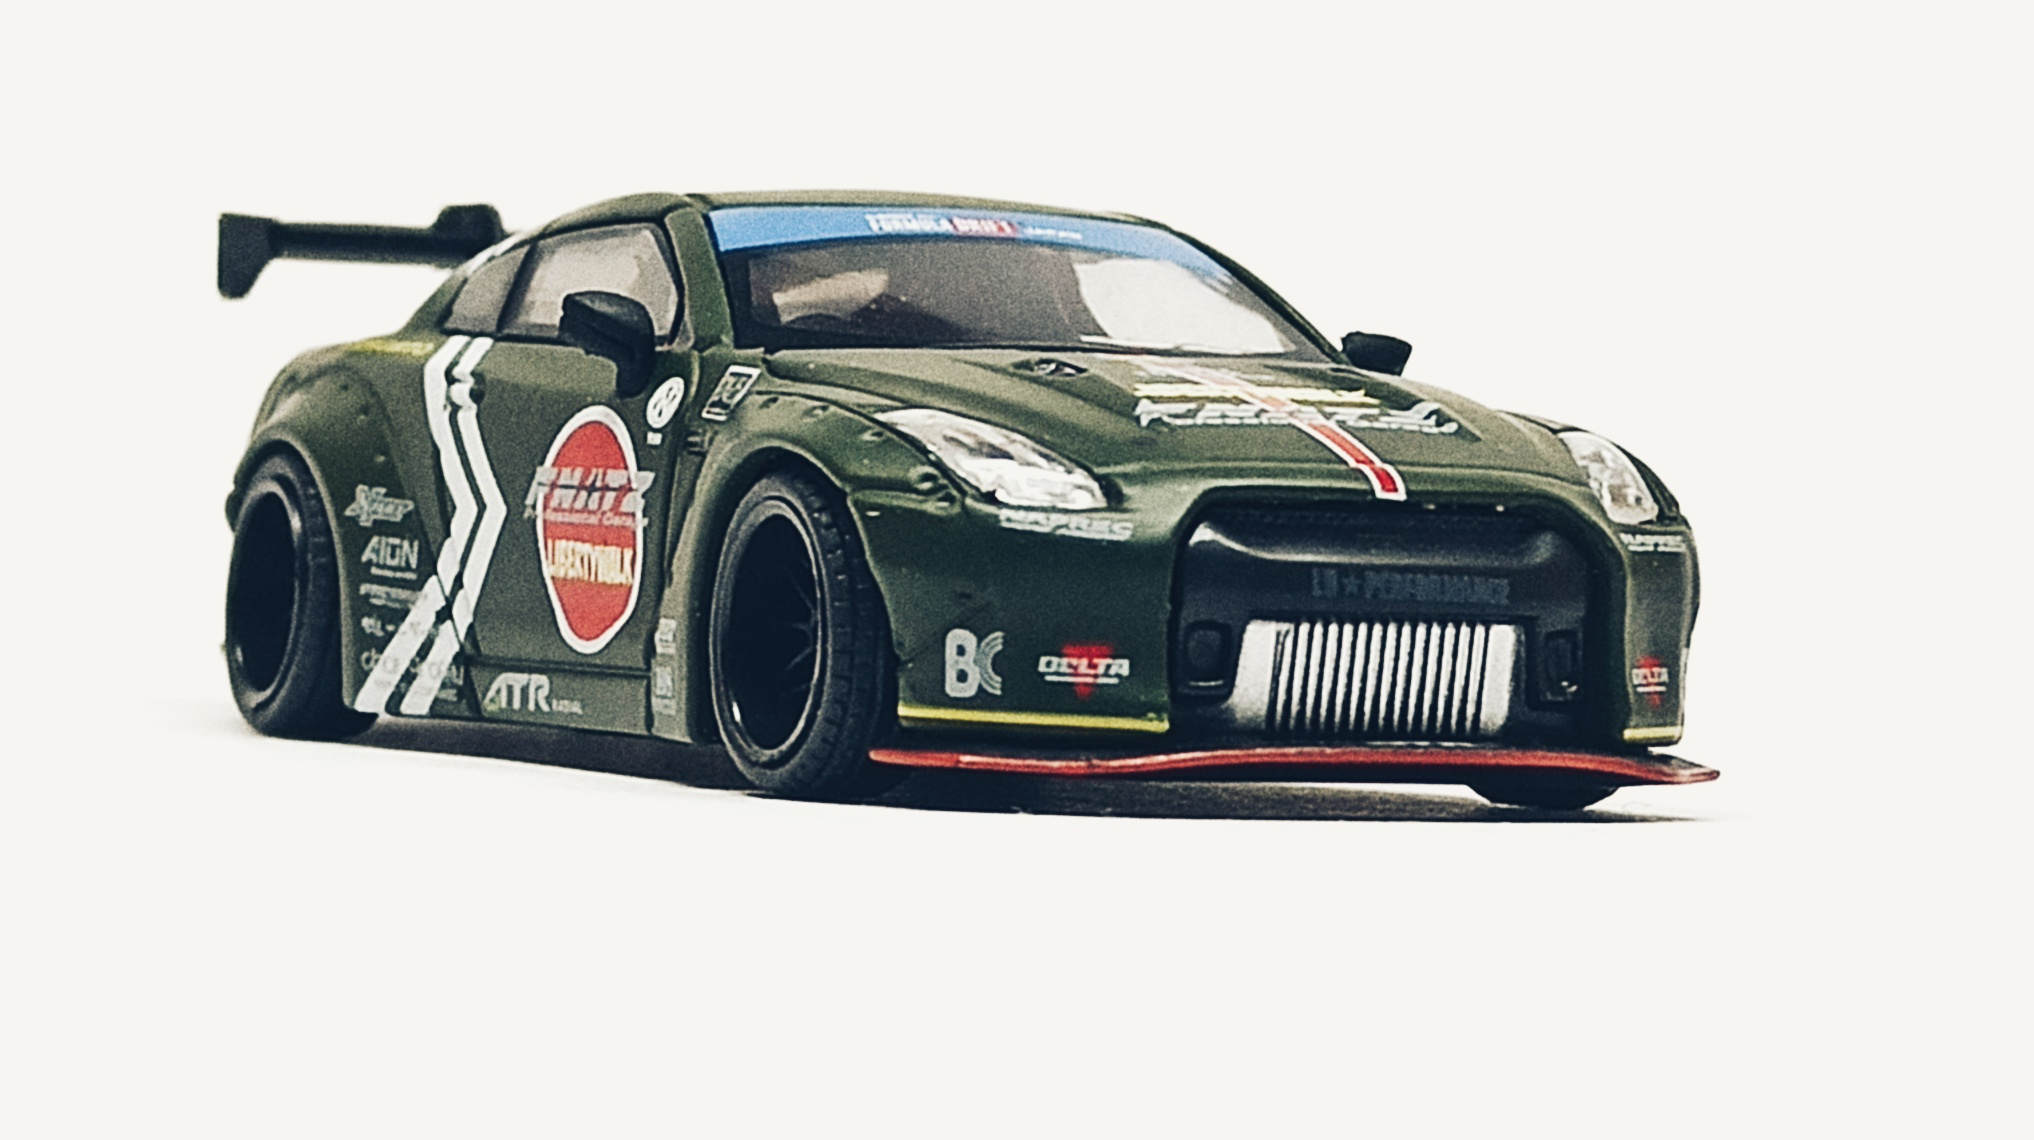 Mini GT Nissan GT-R (R35) (MGT00007-R) 2018 Liberty Walk LB★Works Type 1 Rear Wing ver 1 Zero Fighter Special (RHD) front angle